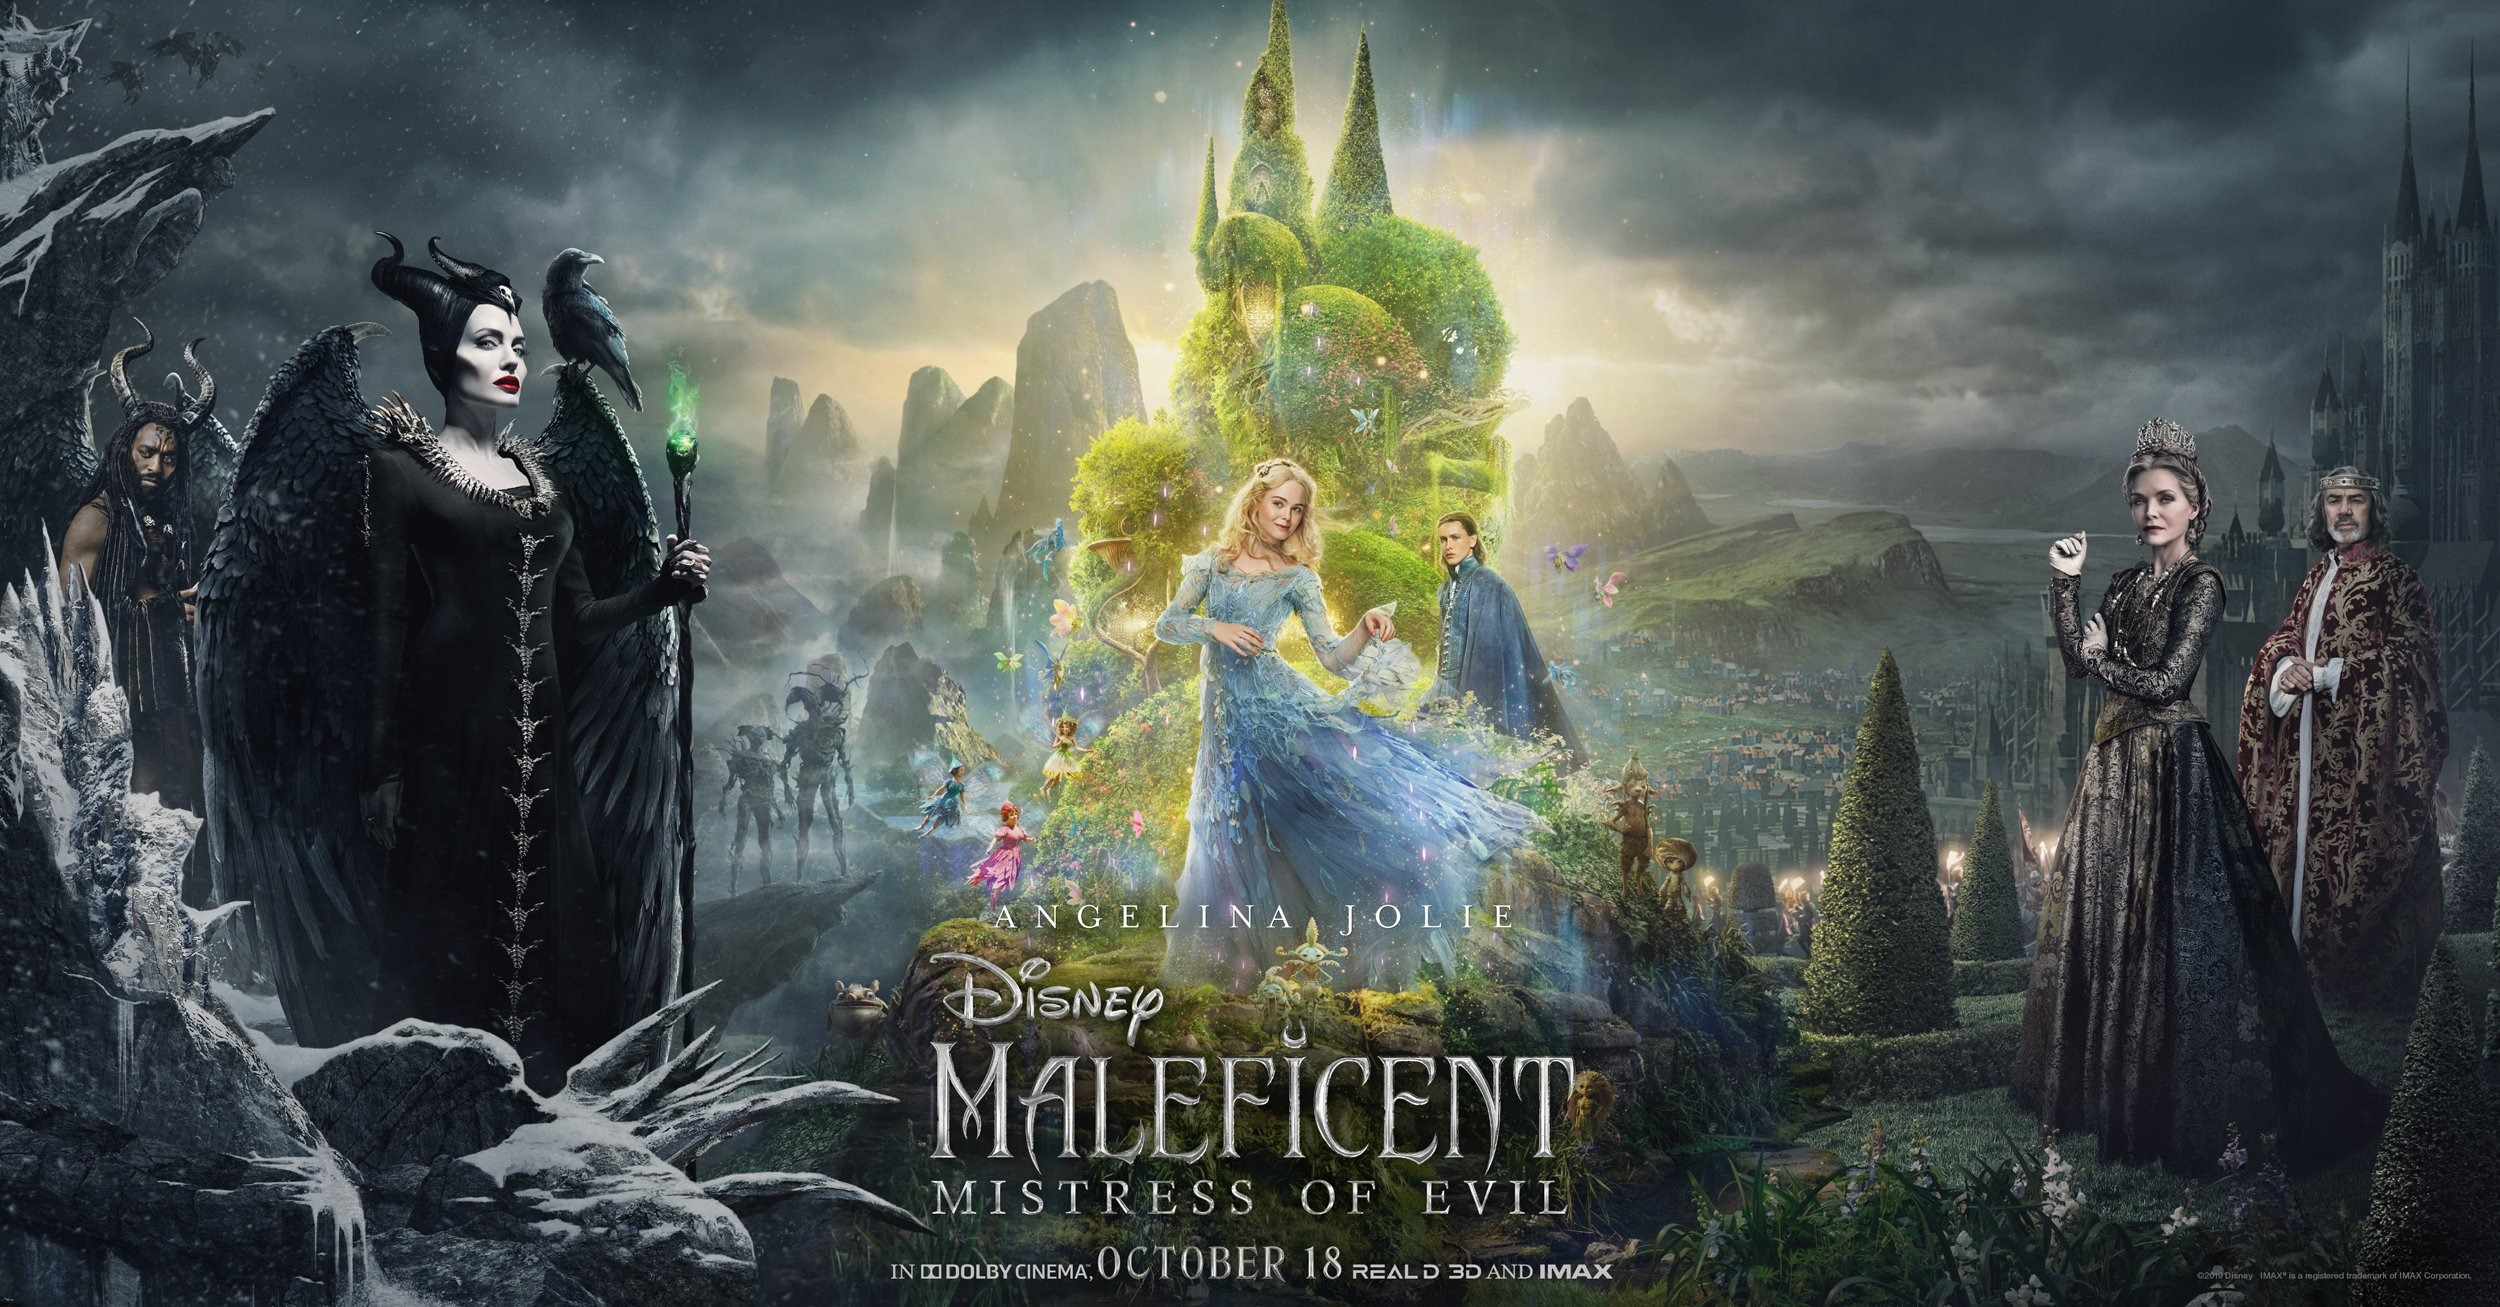 maleficent mistress of evil uk premiere